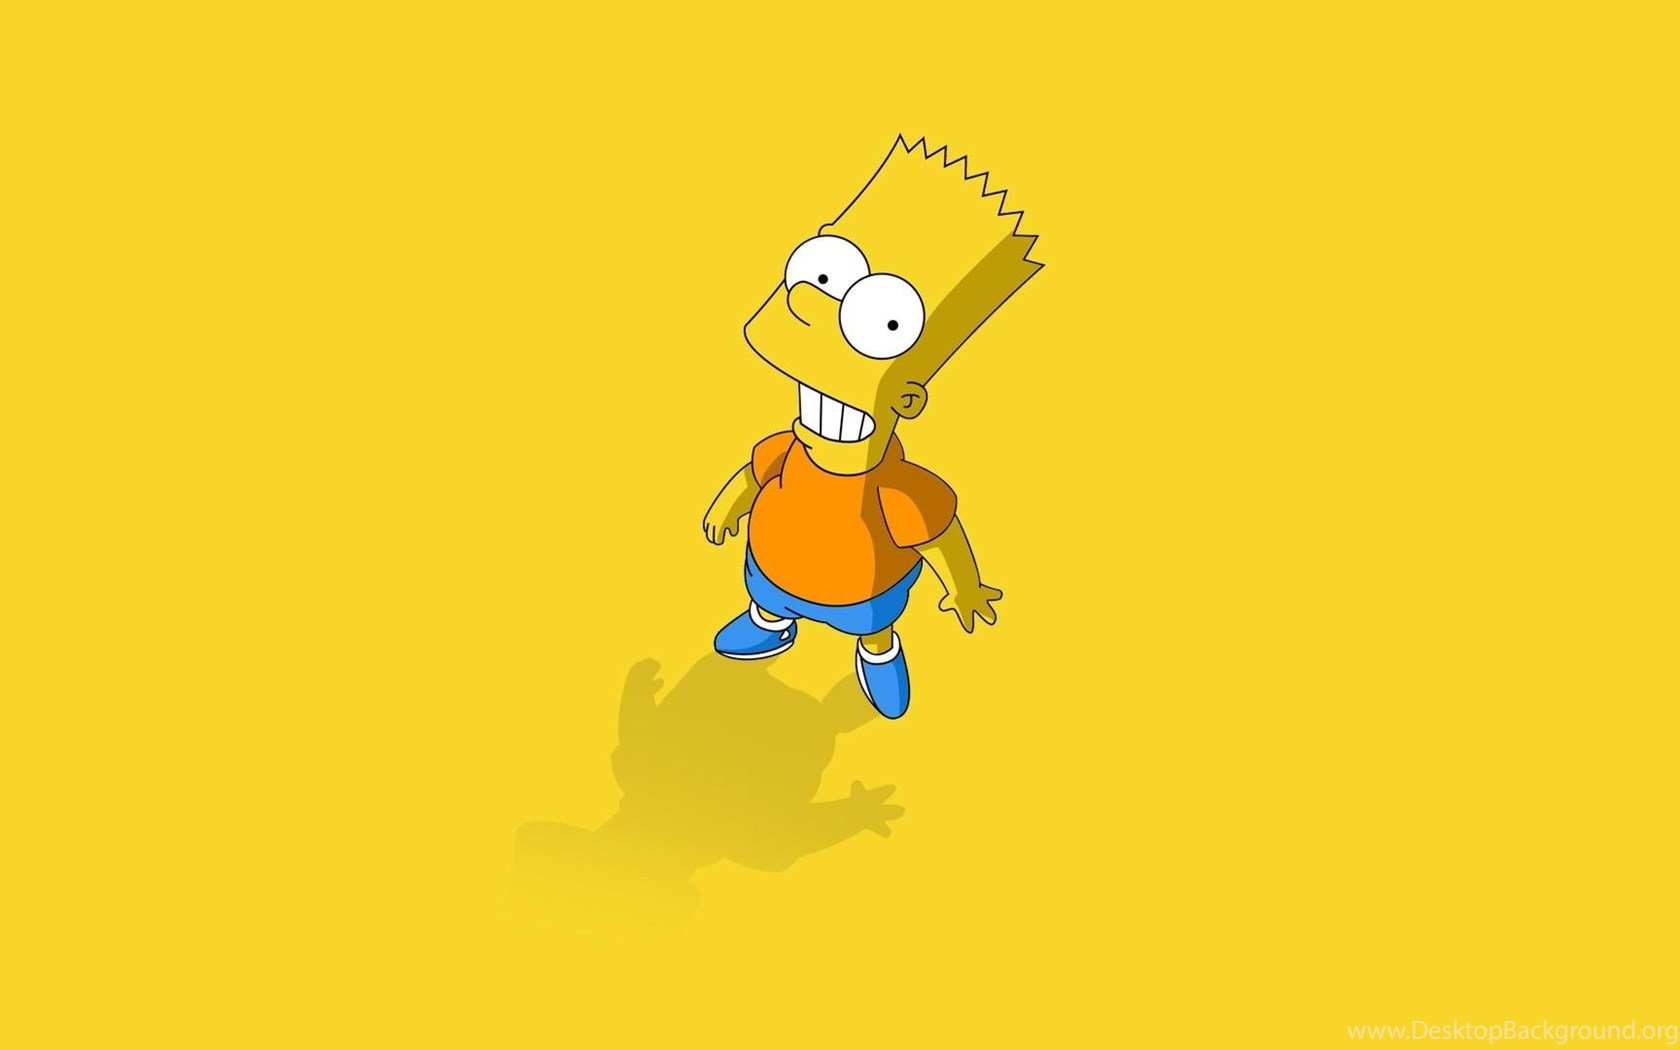 1005658 minimalistic the simpsons bart simpson yellow backgrounds